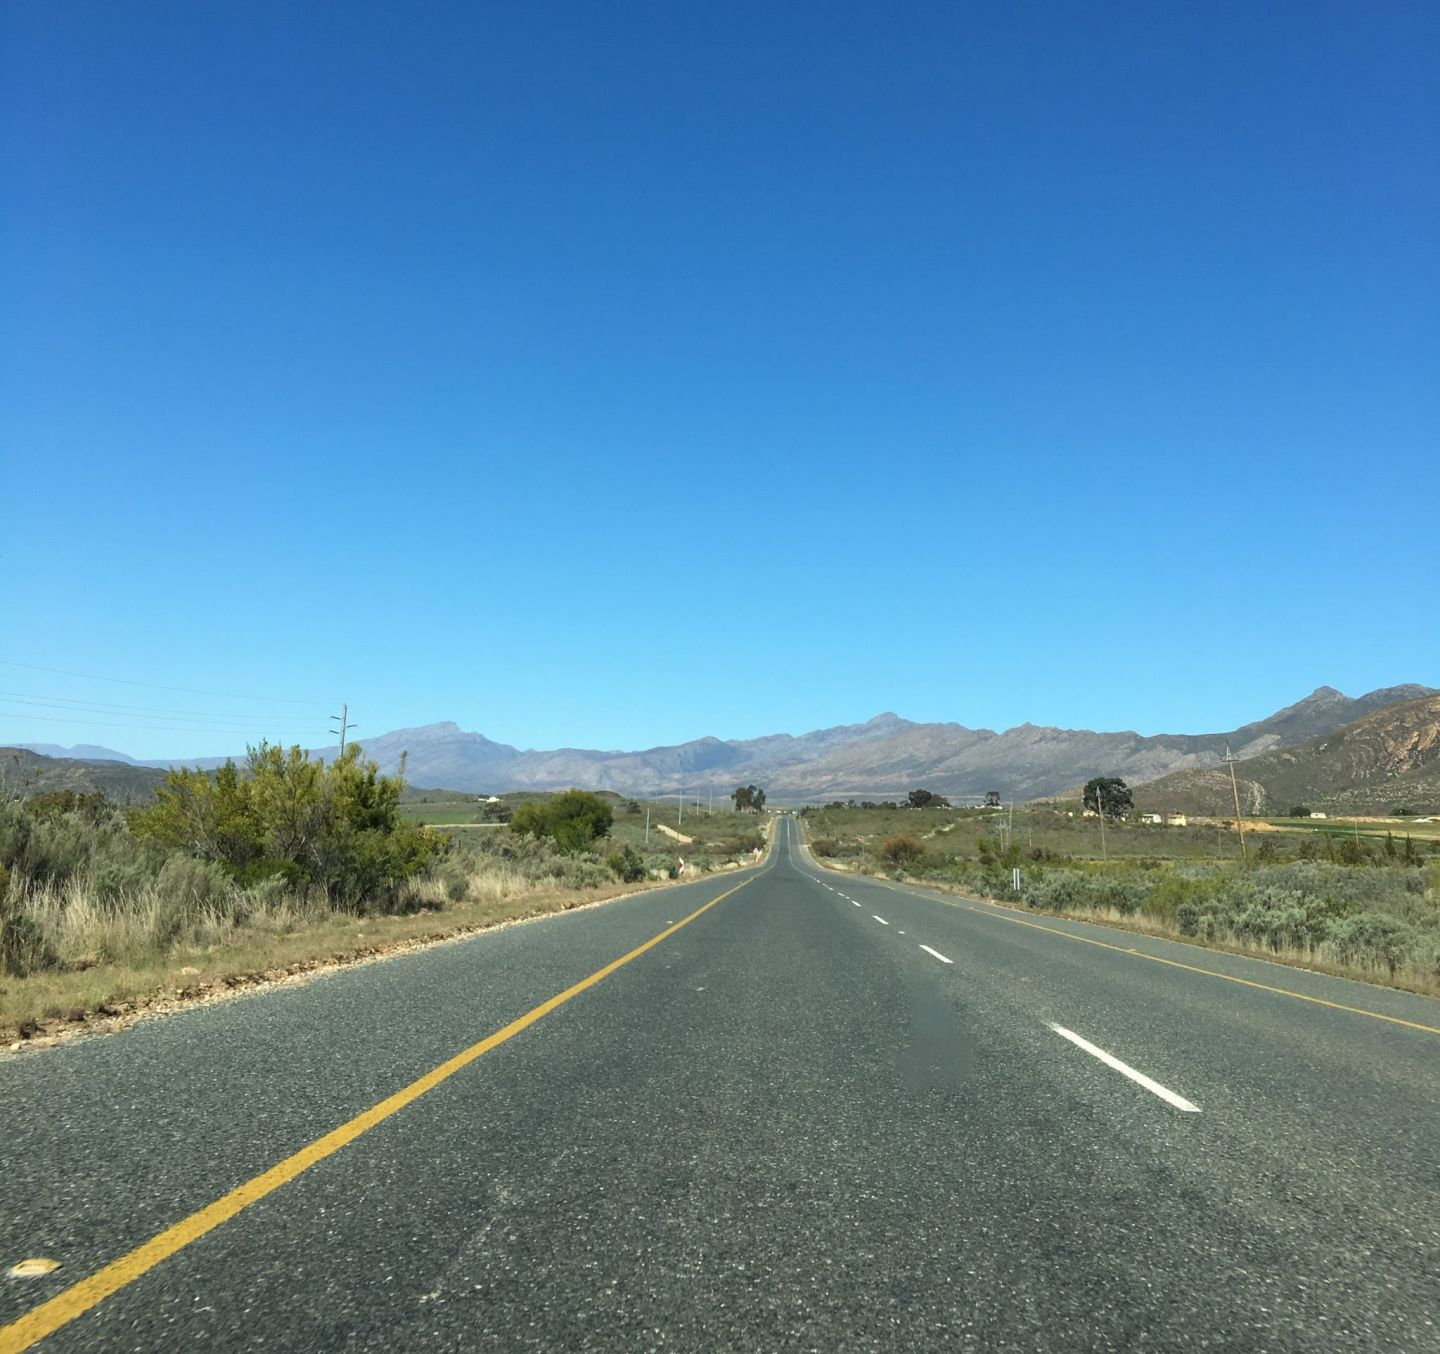 Top tips for driving in South Africa